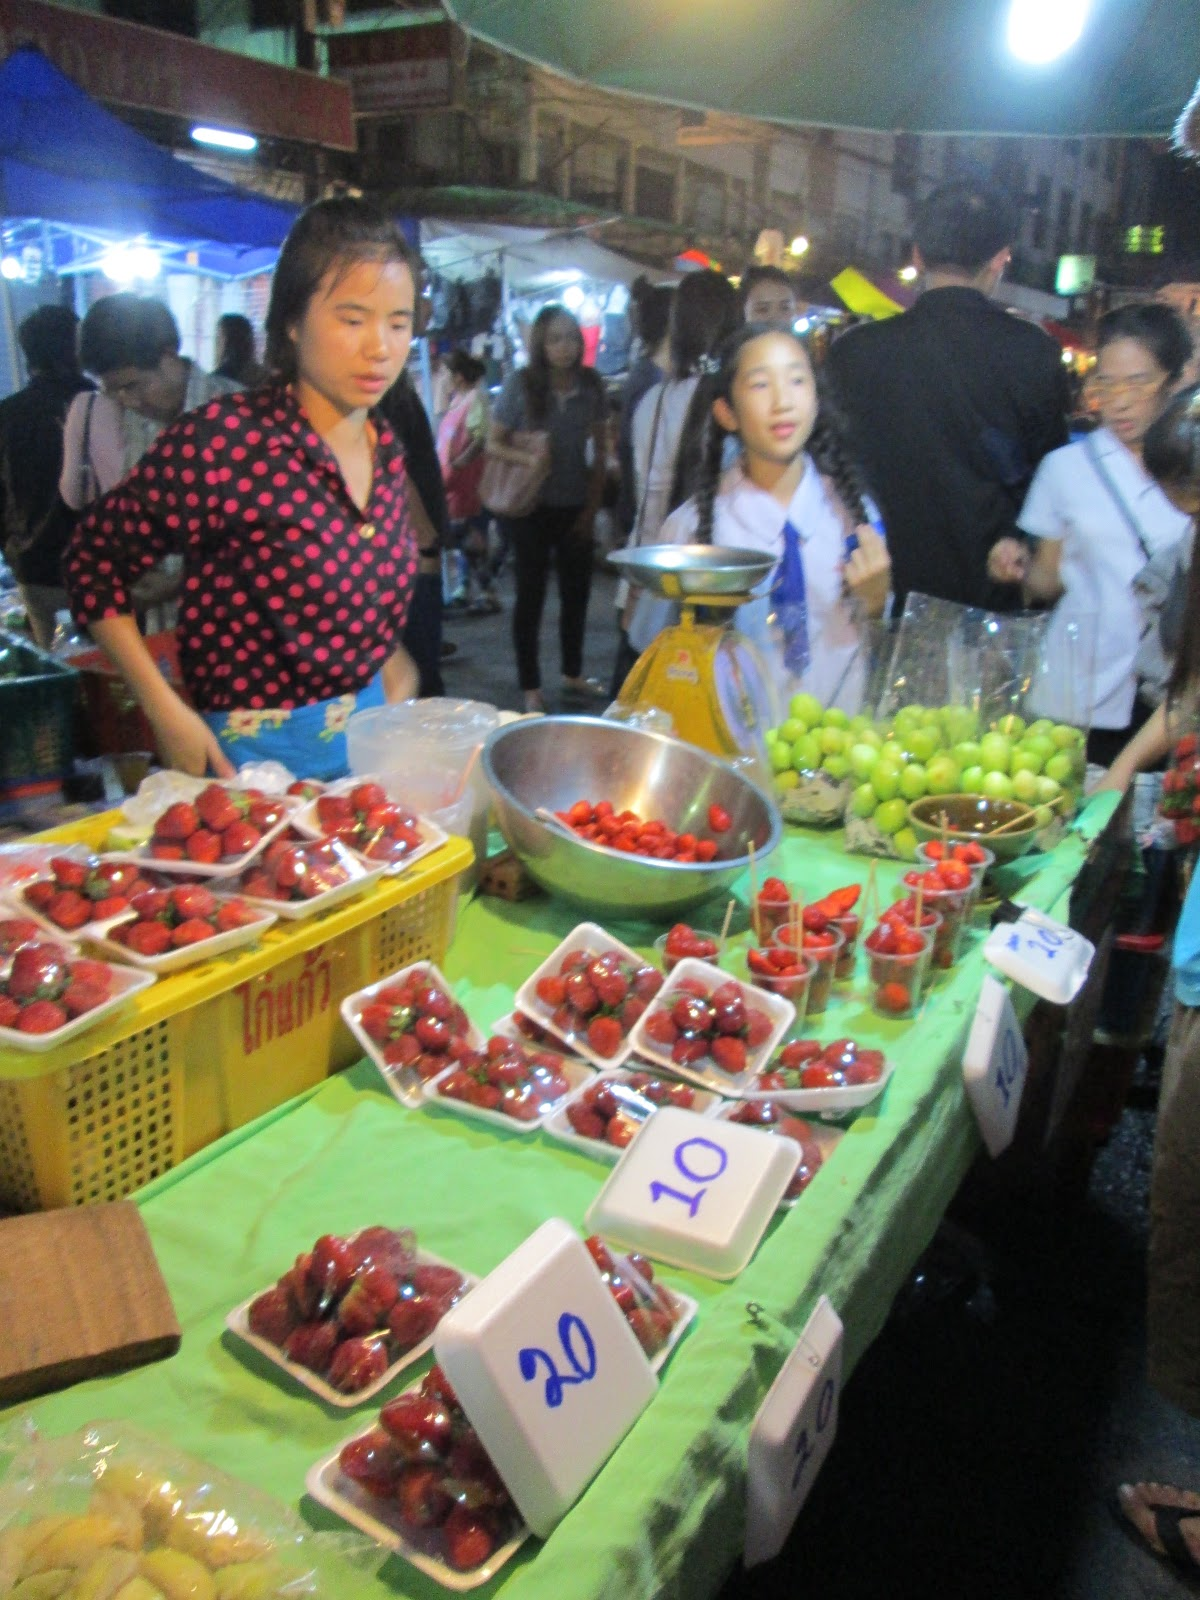 Delicious Thai Dinners Cooked In A Western Kitchen Street Food At The Chiang Mai Winter Orchid